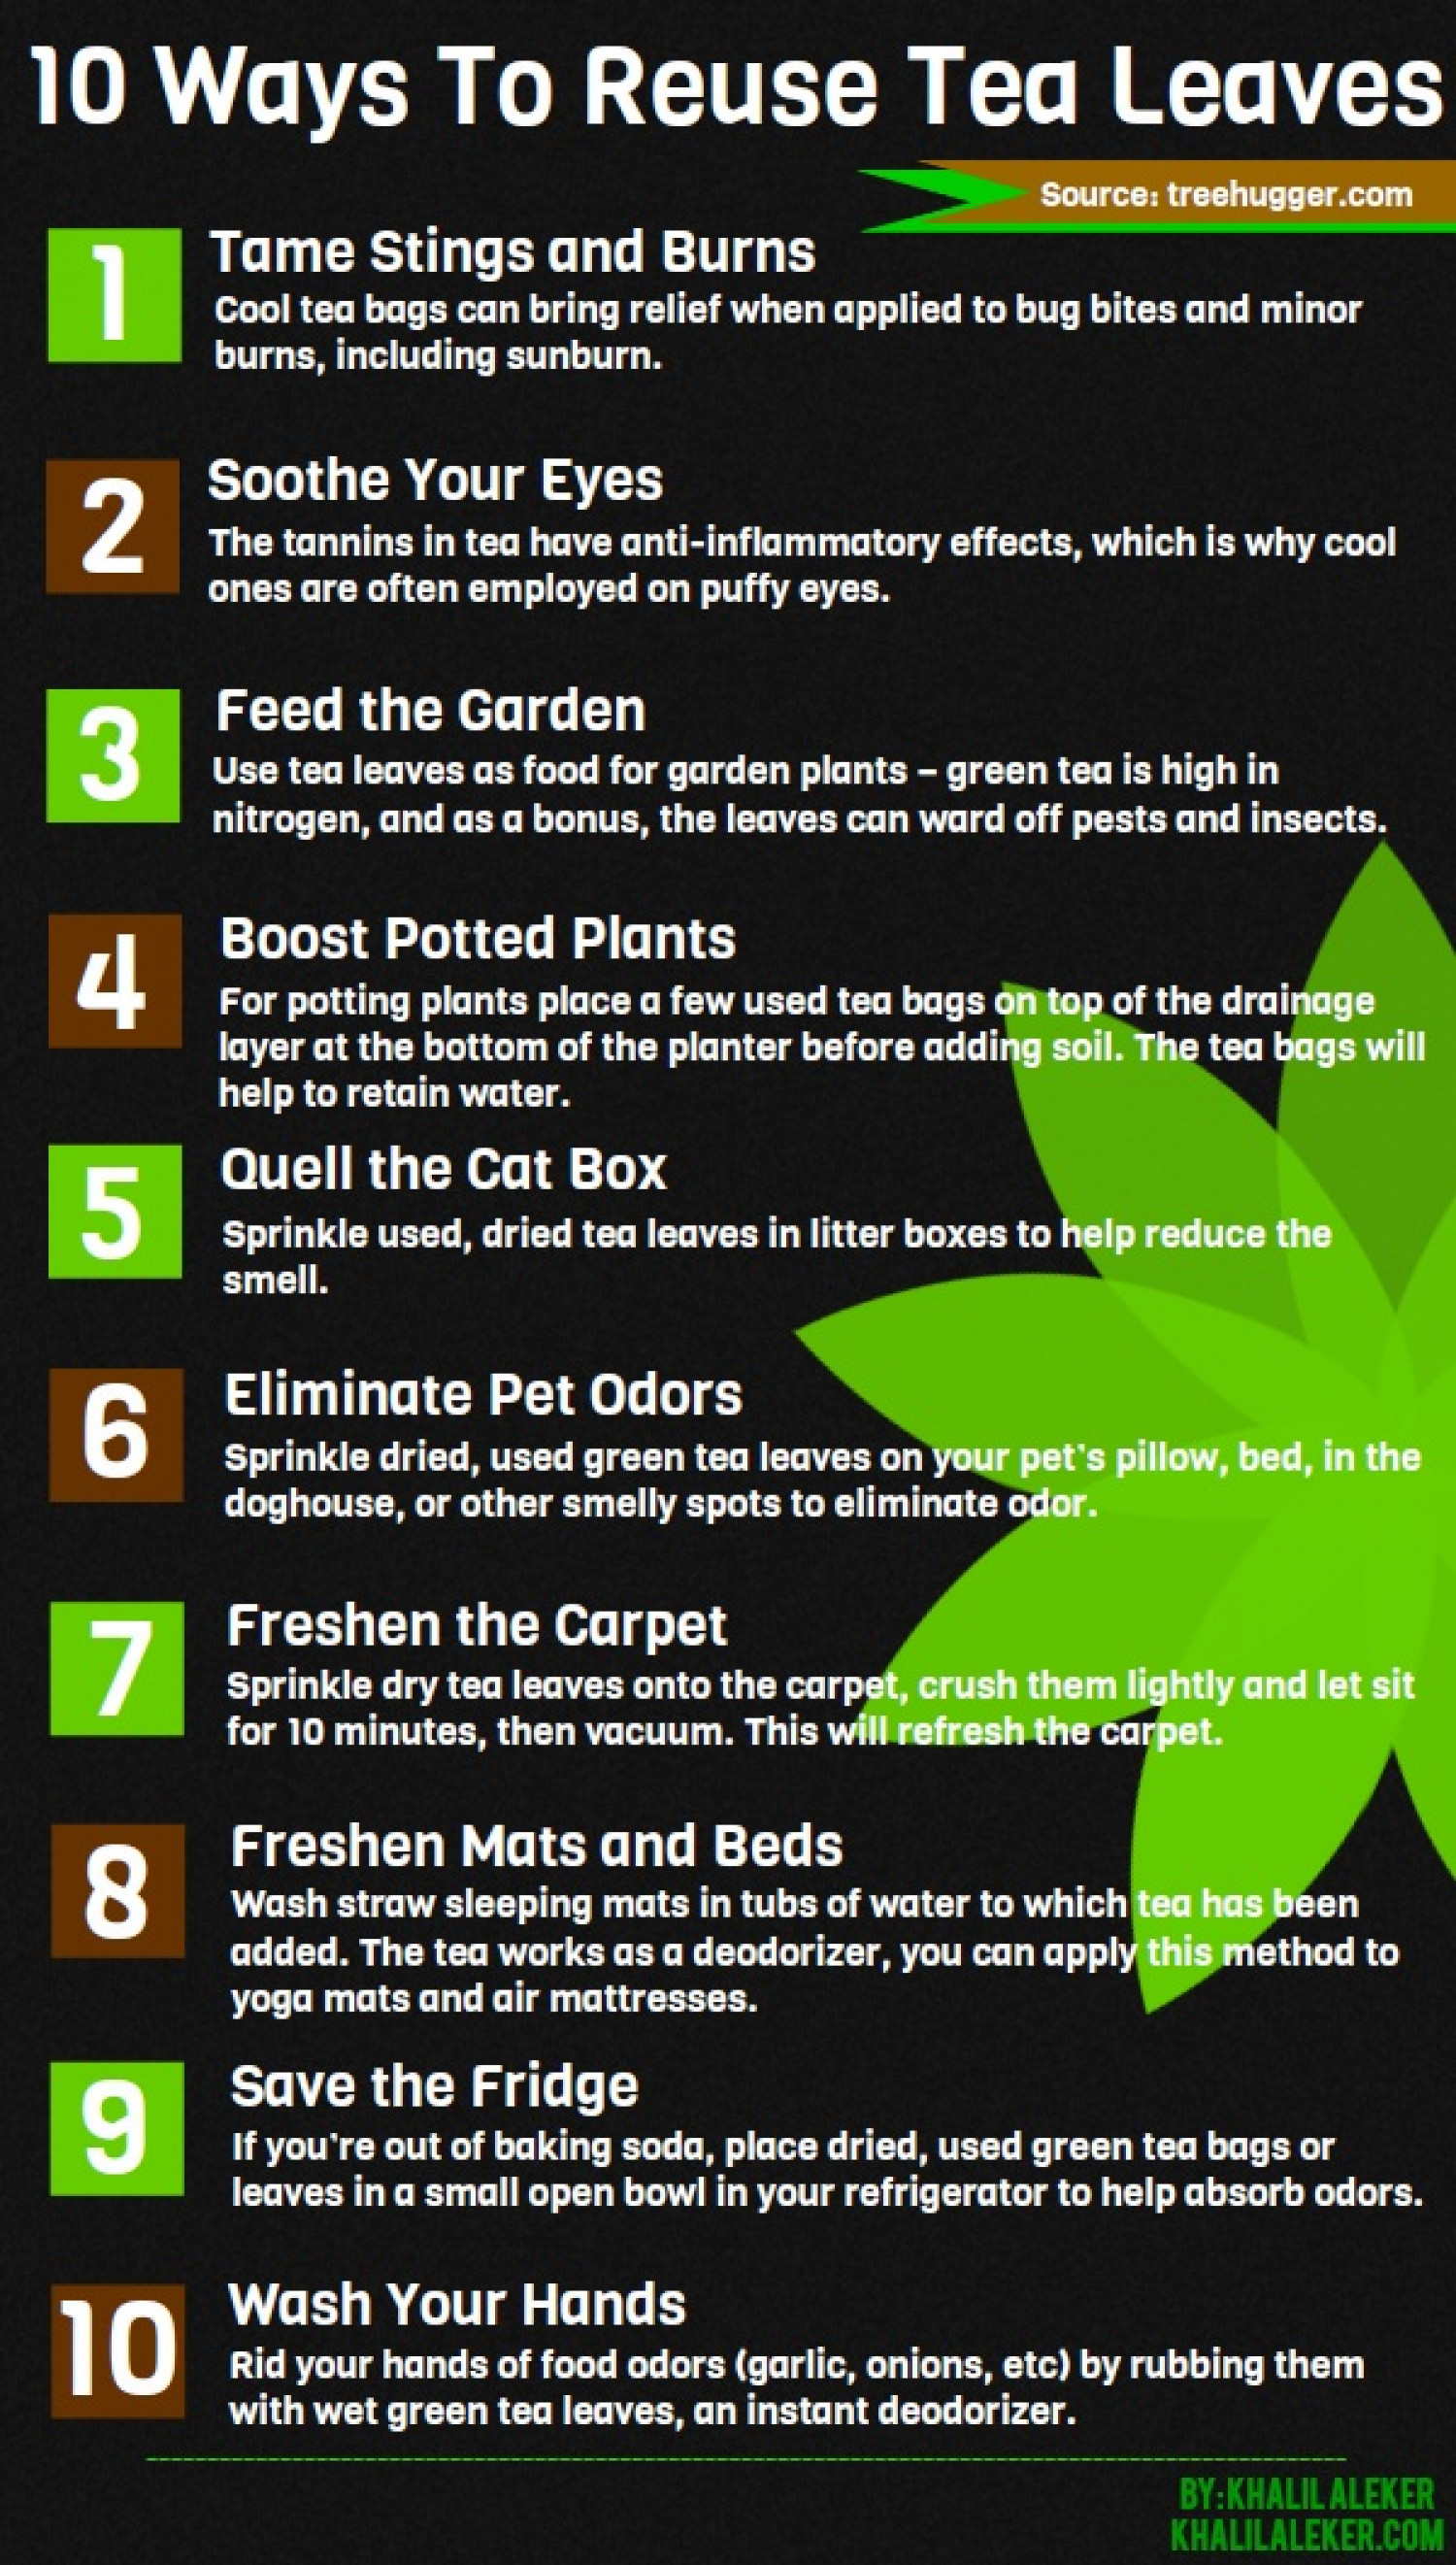 10 Ways to Reuse Tea Leaves Infographic